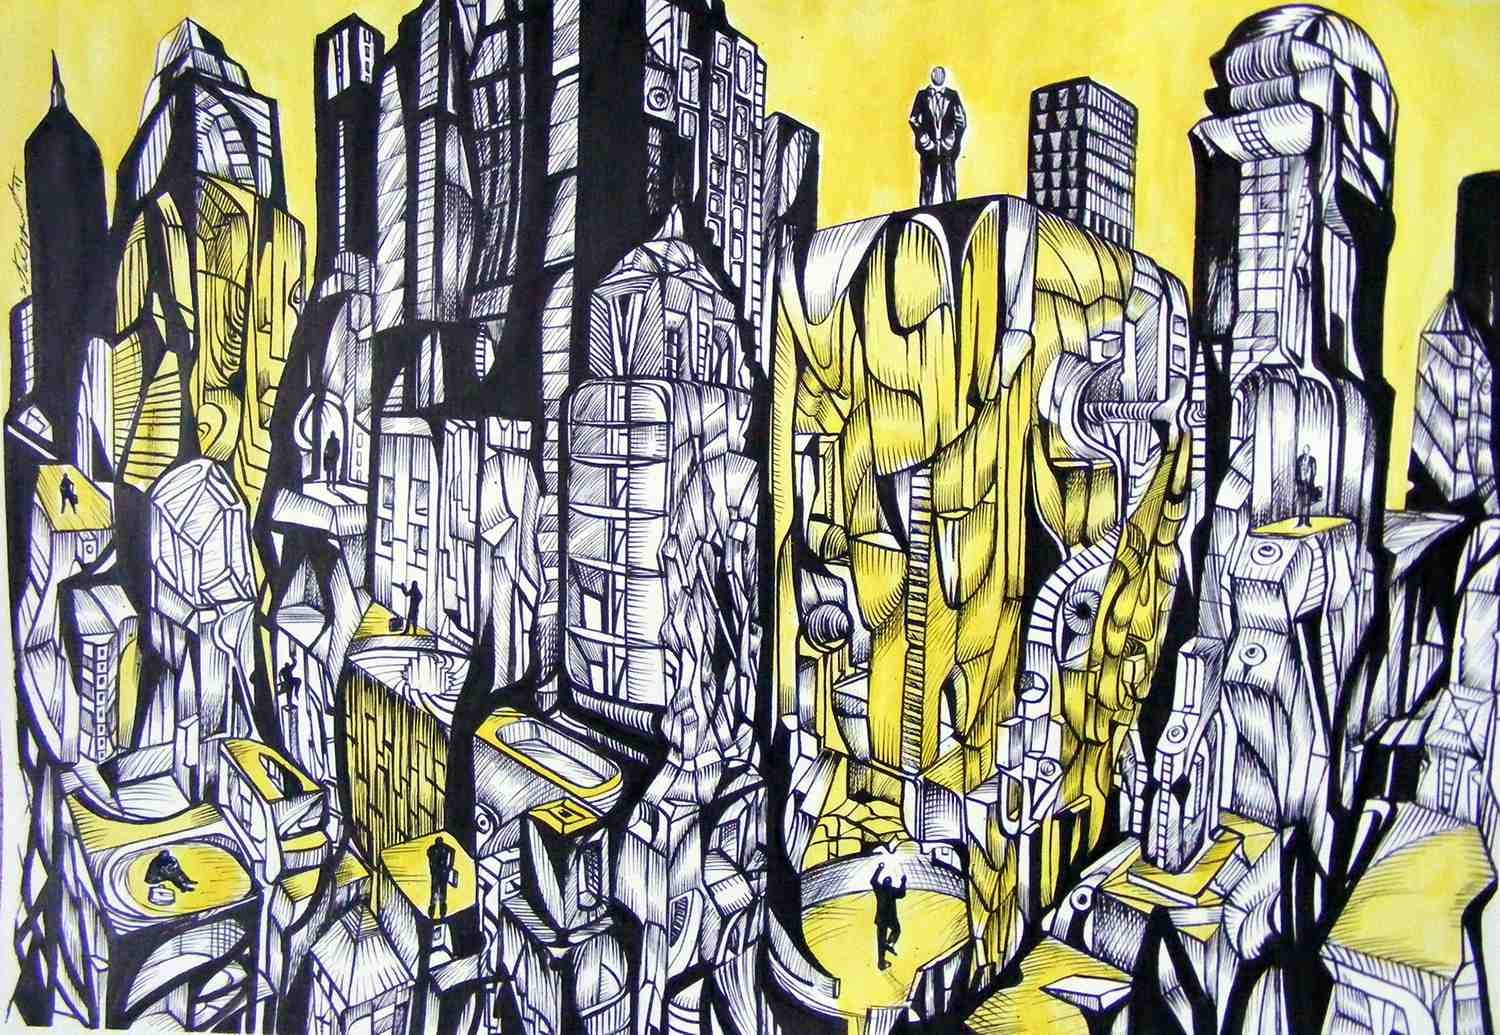 The city of men, acrylic drawing on canvas by artist Marko Gavrilovic.